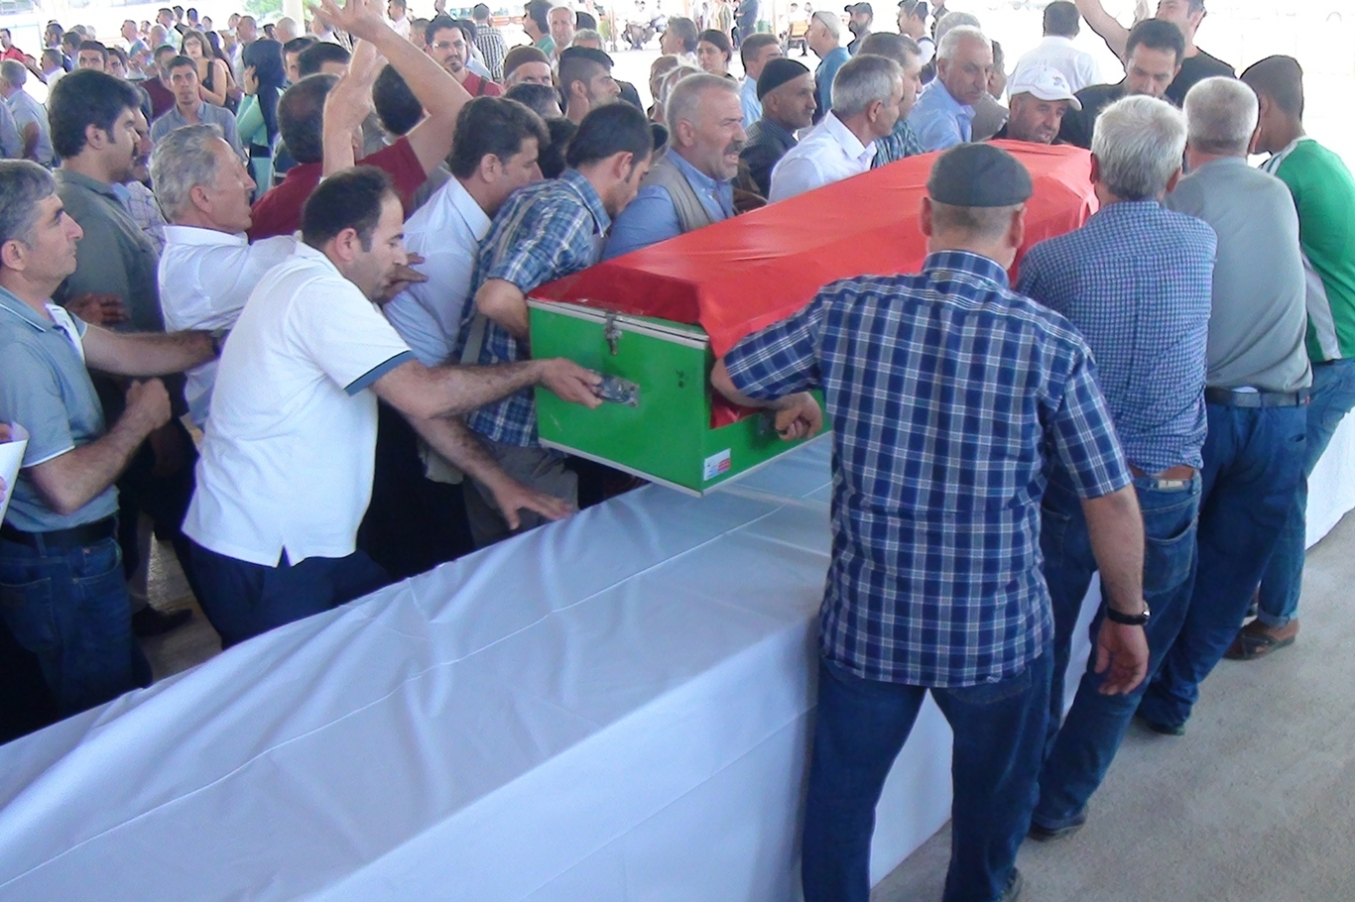 The bodies of those killed in Suruc are delivered to their families